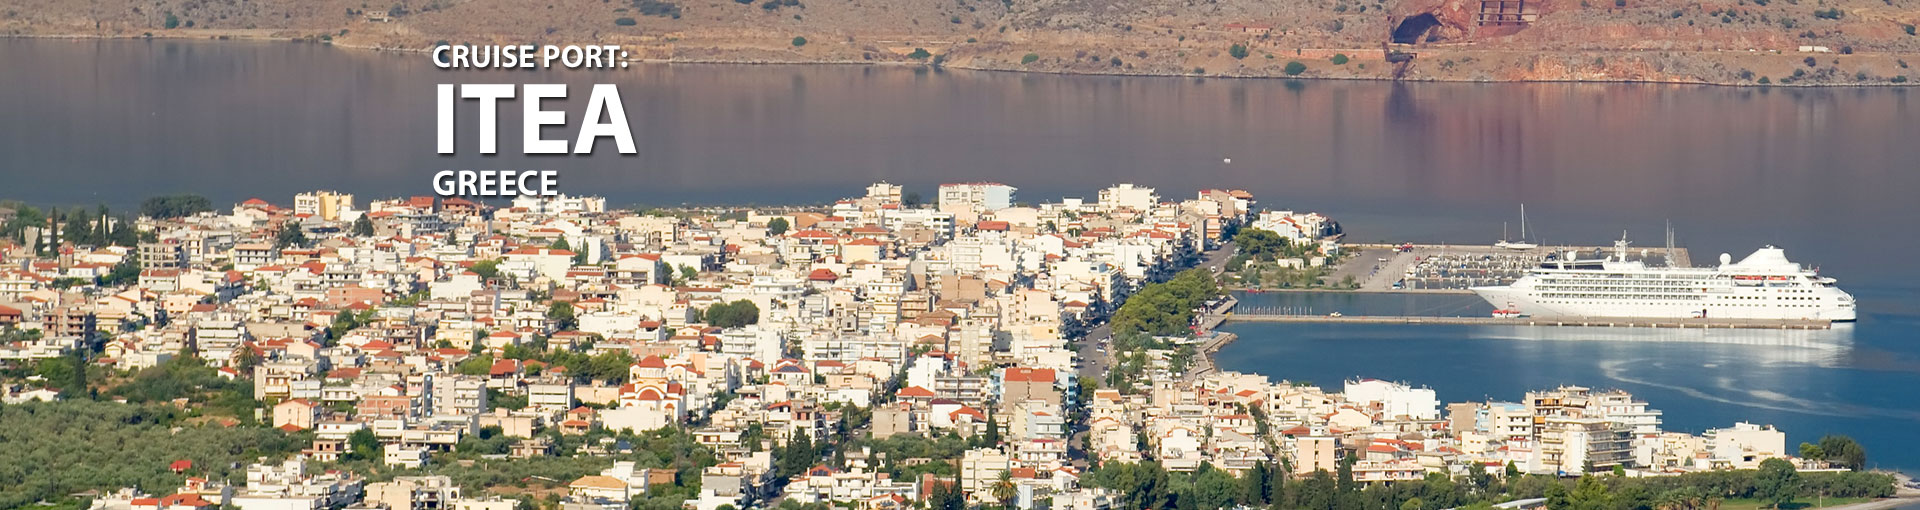 Cruises to Itea, Greece